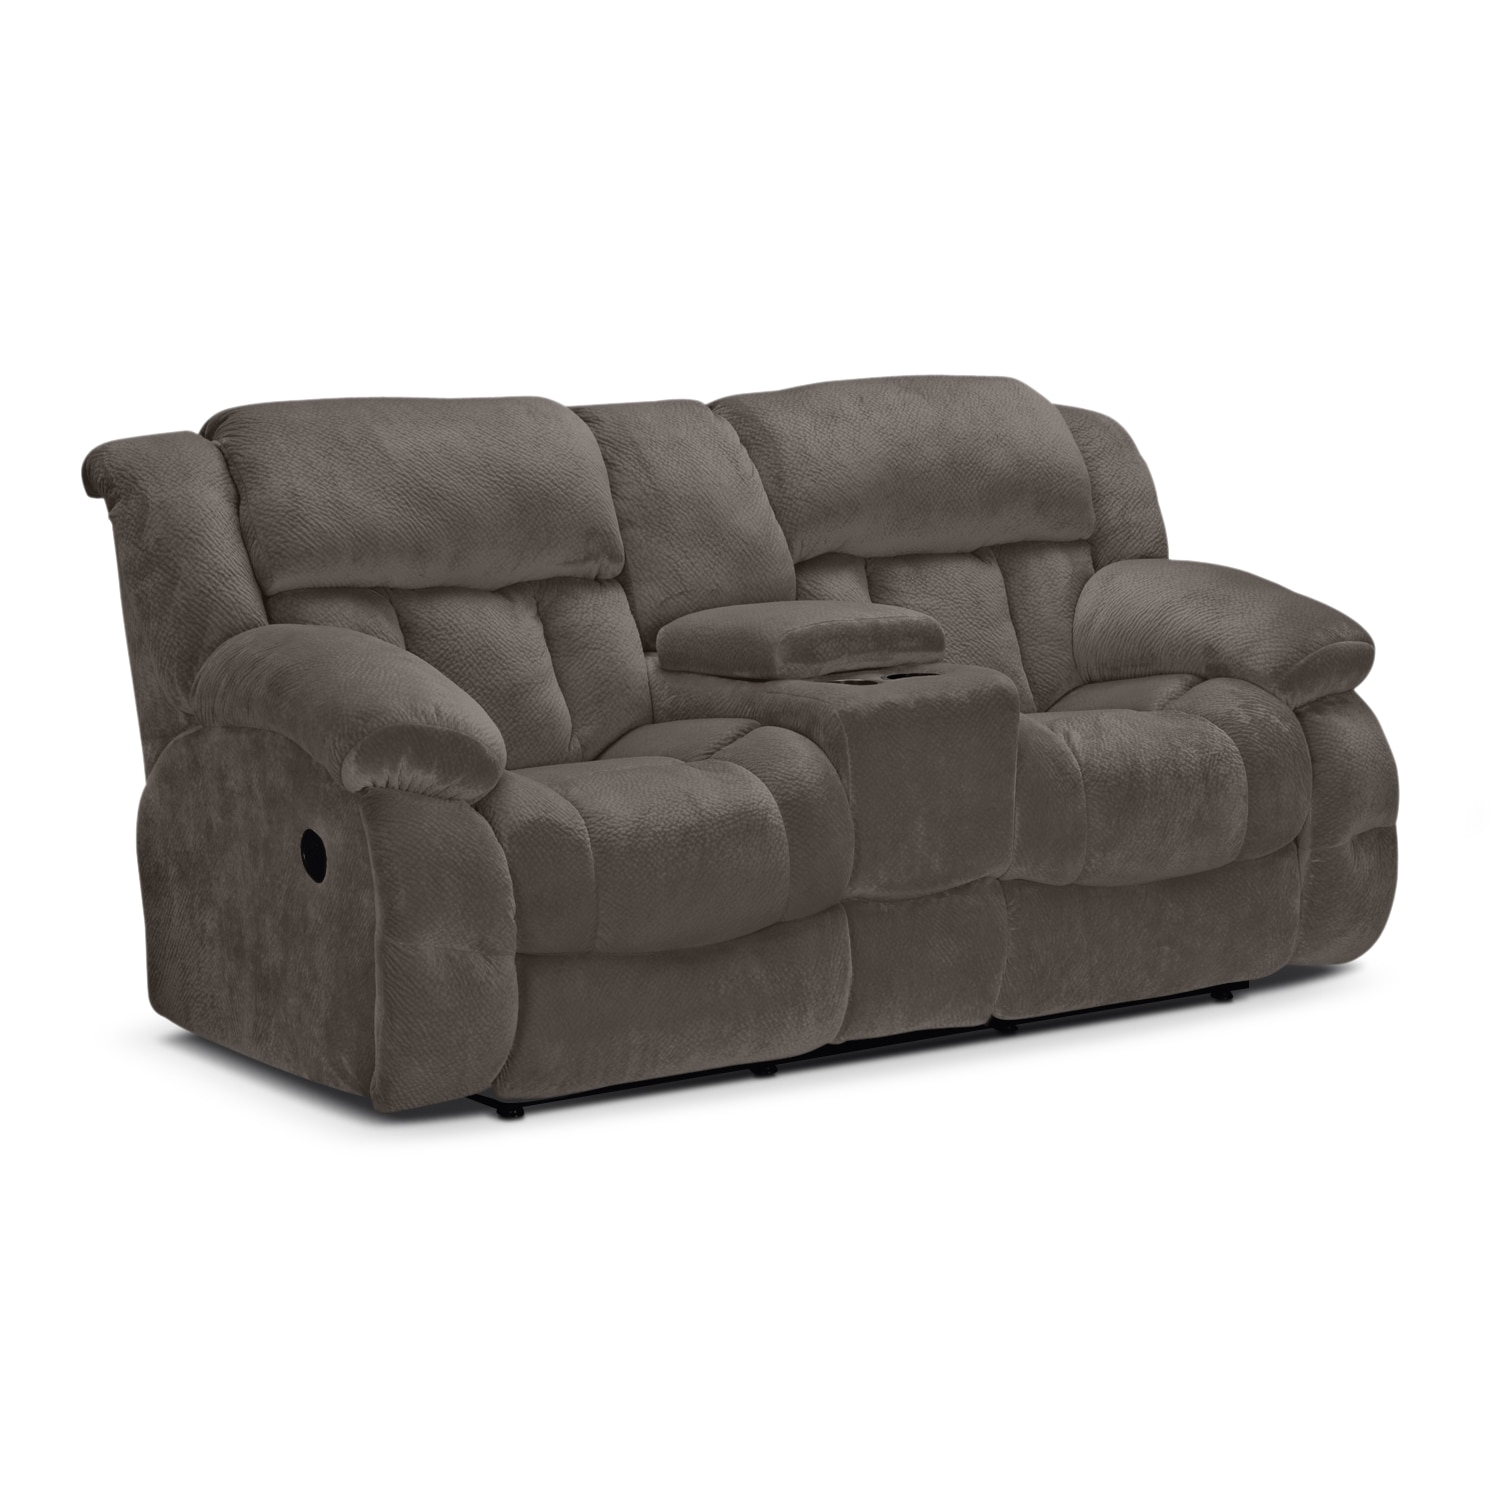 Park City Upholstery Dual Reclining Loveseat Value City Furniture